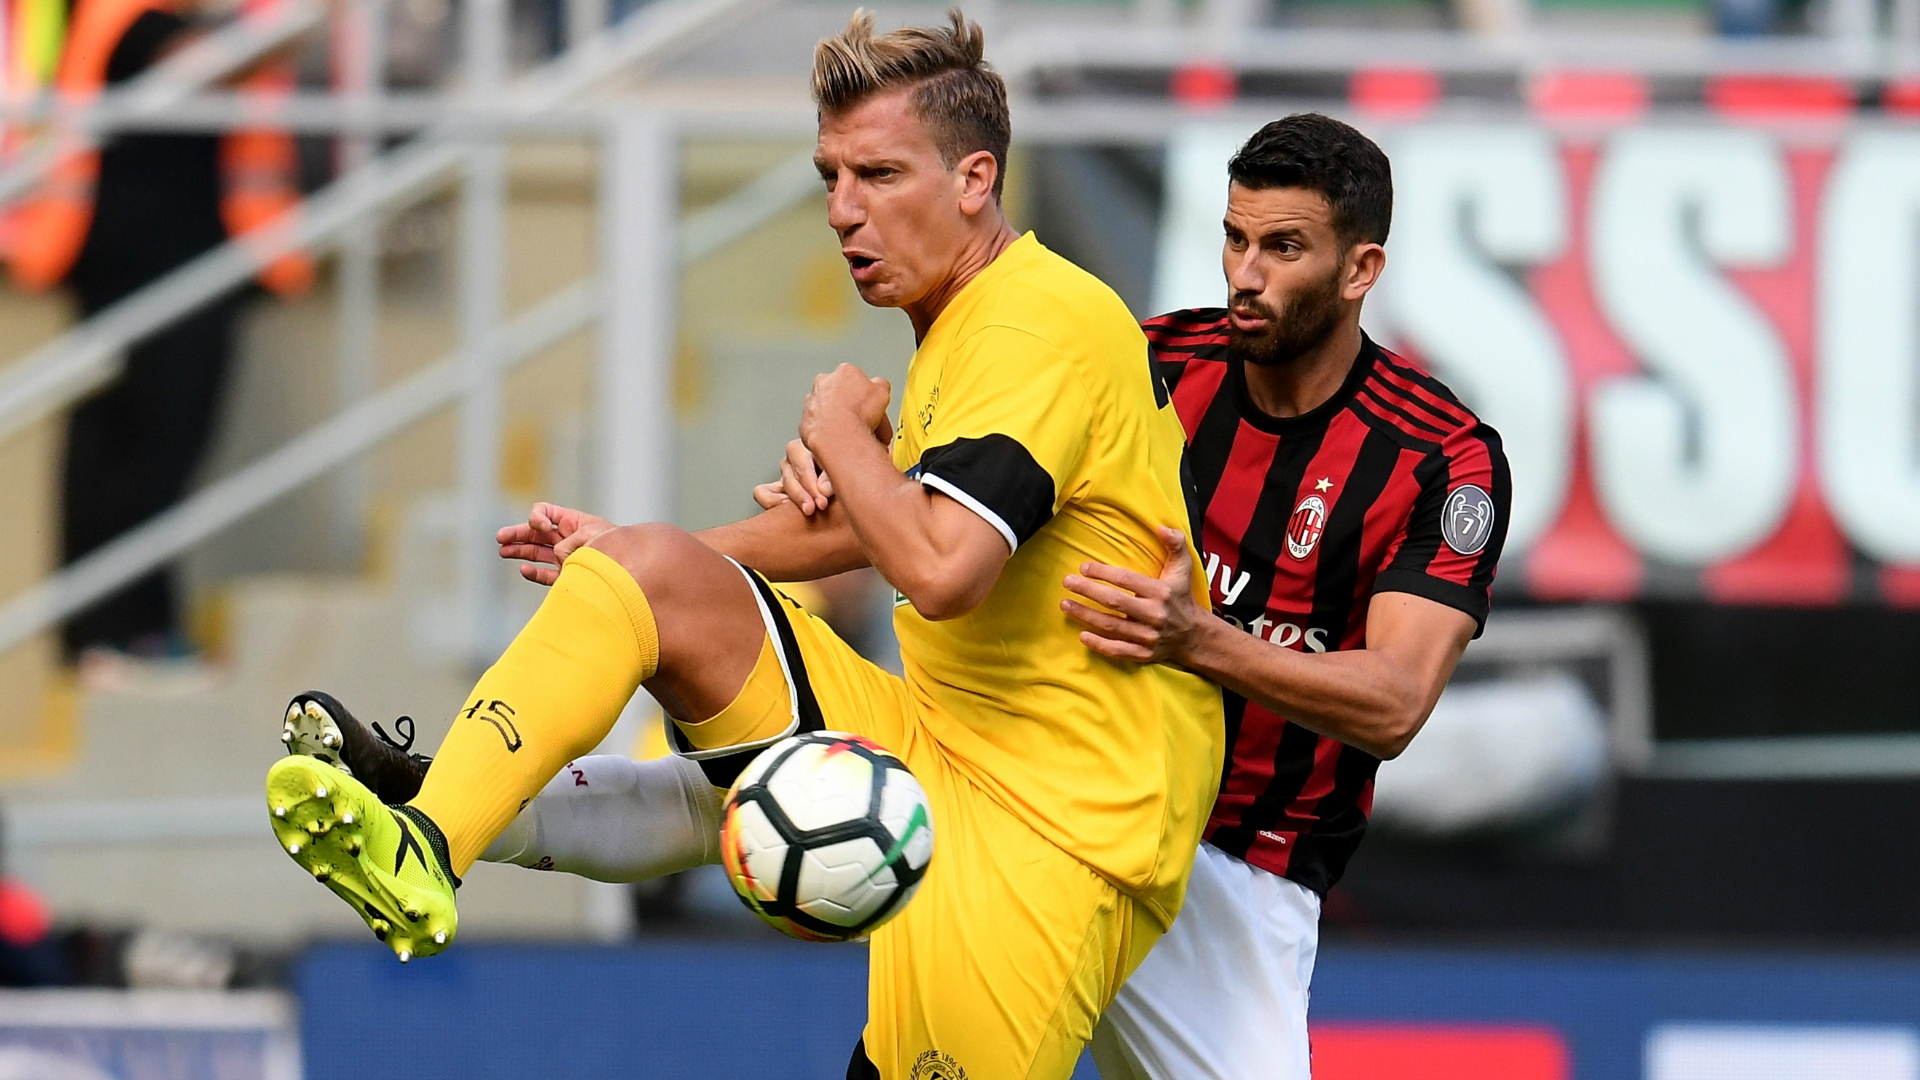 images.performgroup.com/di/library/GOAL/c8/5/maxi-lopez-musacchio-milan-udinese-serie-a_1ndh1cjbek0vv1ijn9wzjej3dx